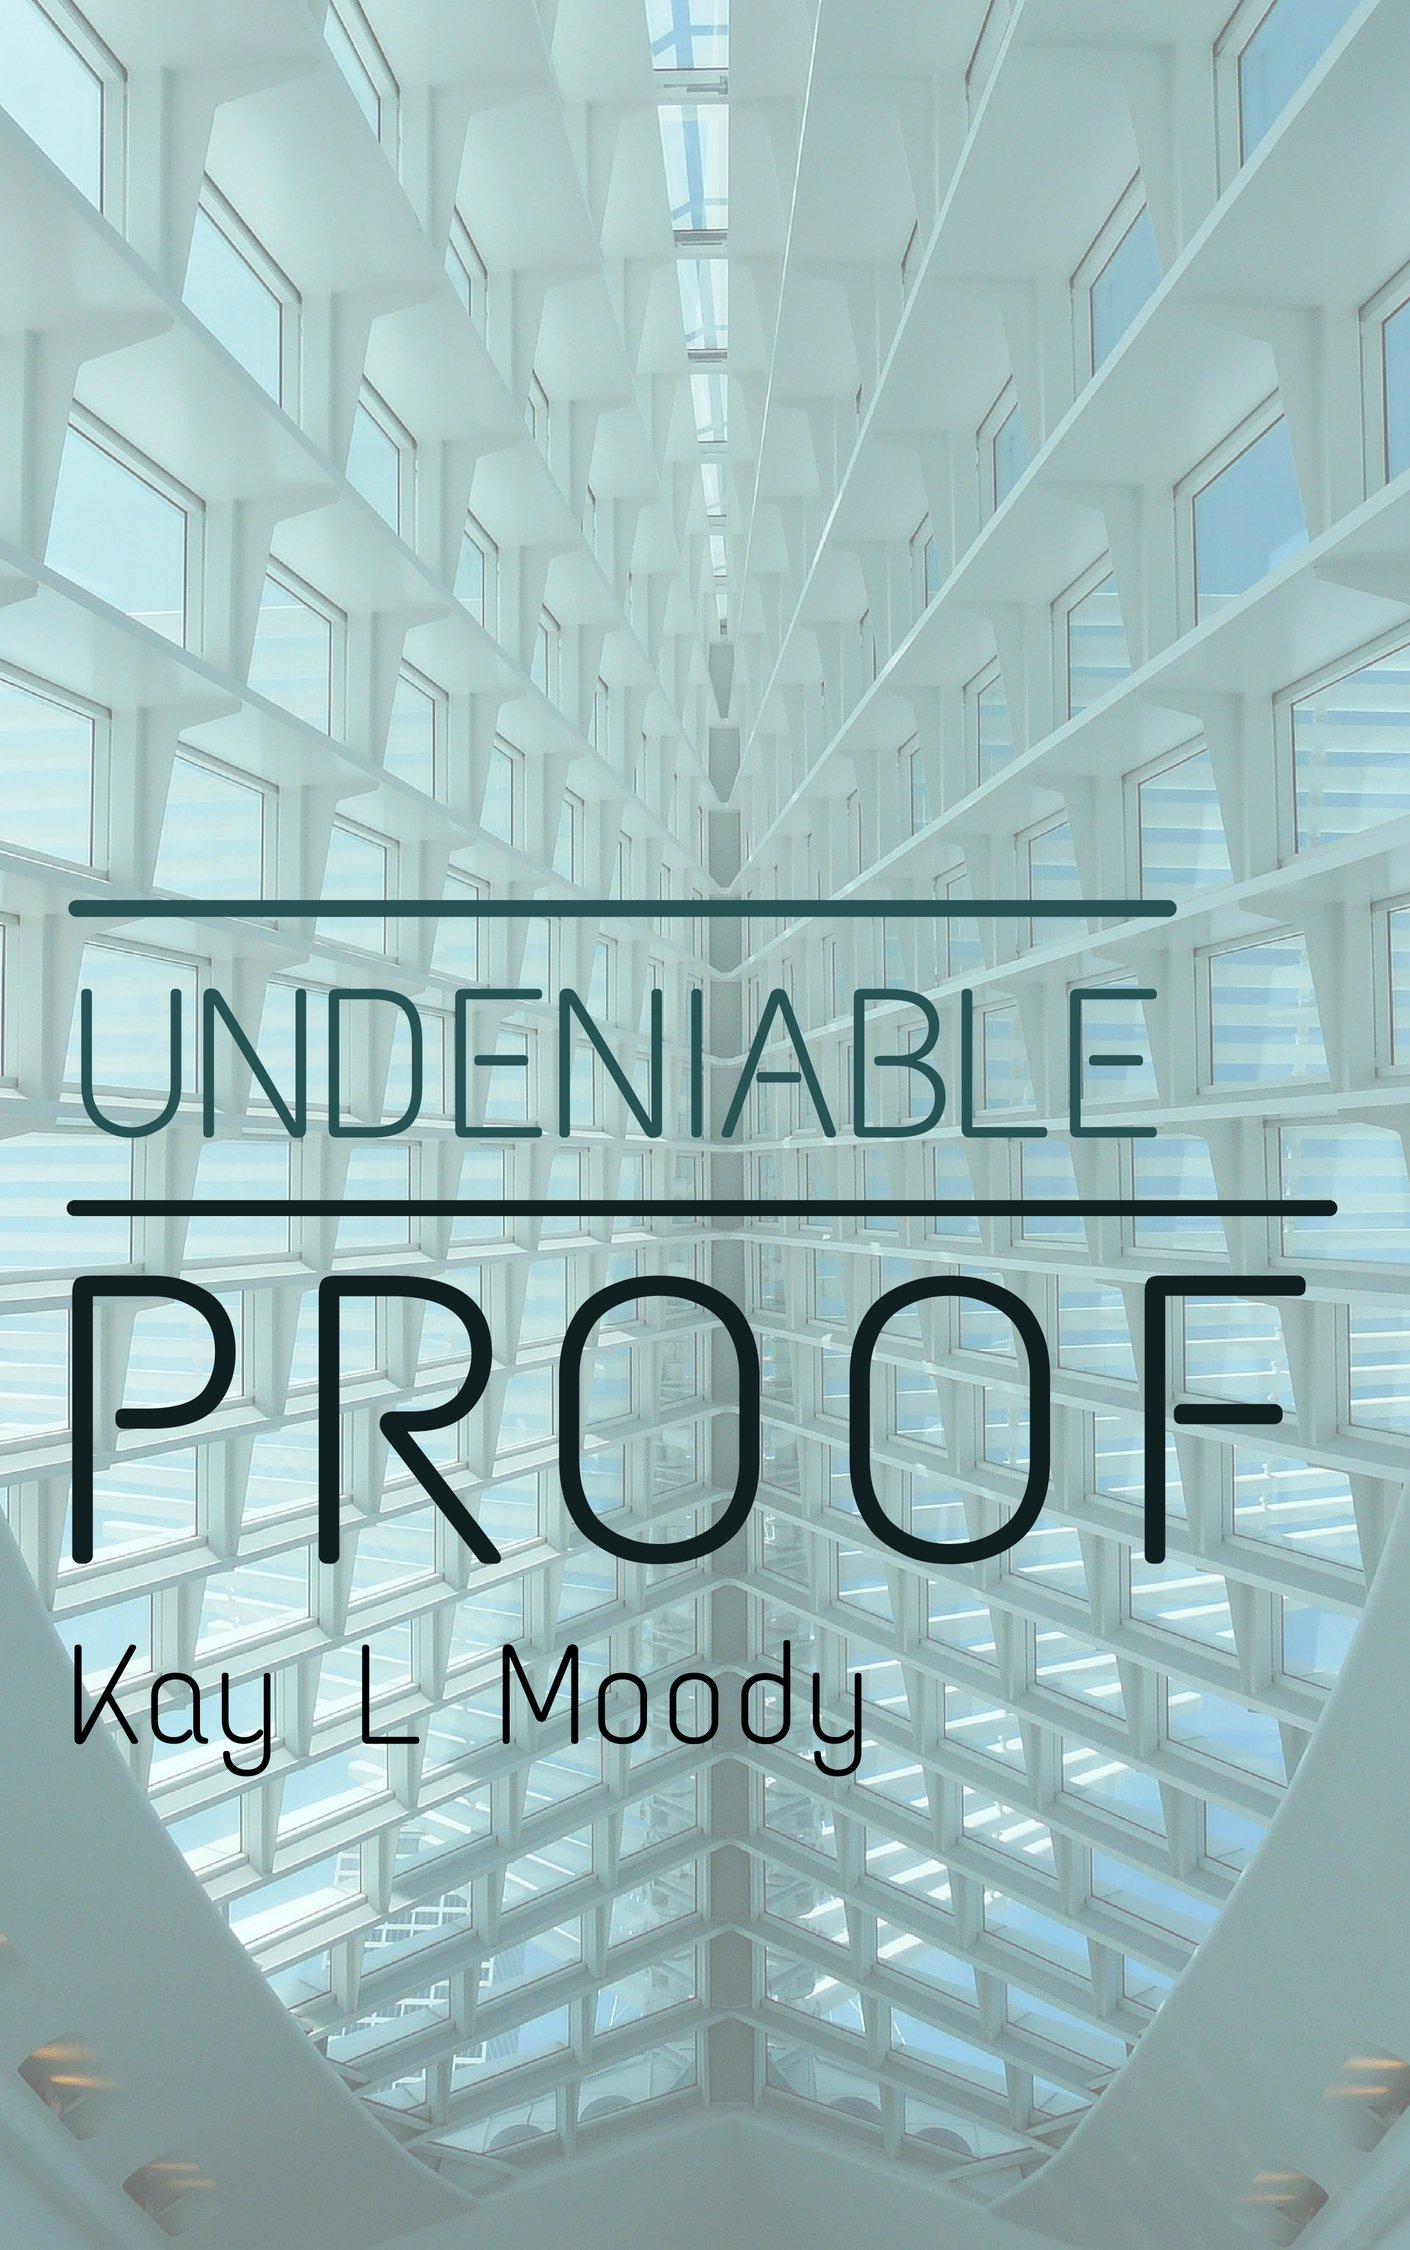 Undeniable Proof is a fun and FREE science fiction short story from Kay L Moody. Click through to start reading now!